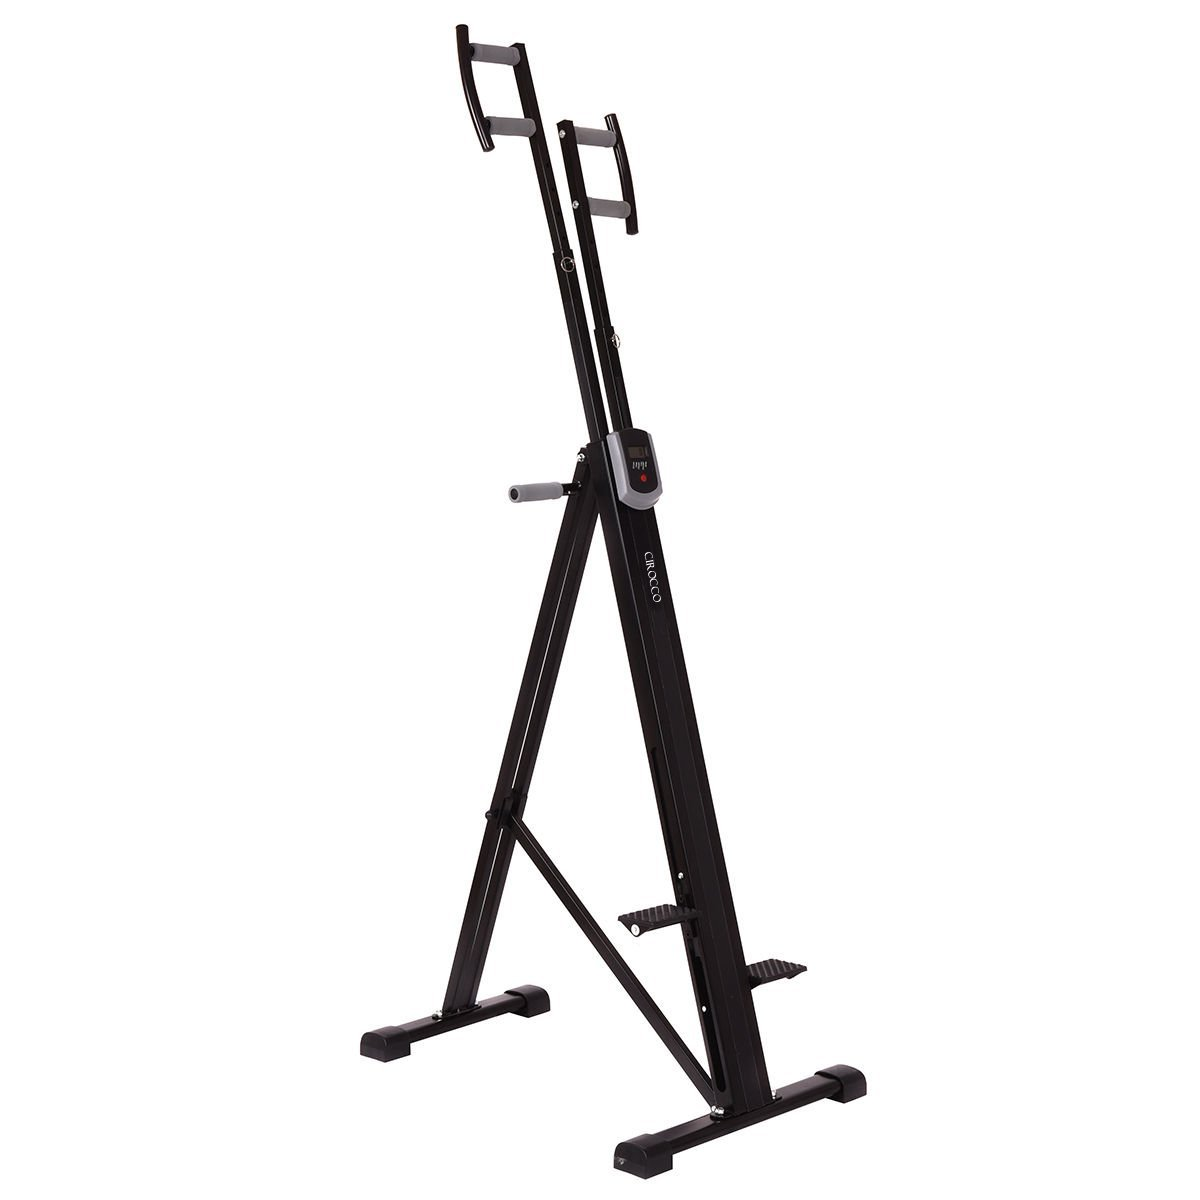 Cirocco Folding Stair Stepper Vertical Climber Exercise Cardio Machine w/ LCD Display | Strong Sturdy Total Full Body Aerobic Anaerobic Workout Fitness Equipment for Calorie Fat Burn Leg Bicep Triceps by Cirocco (Image #3)